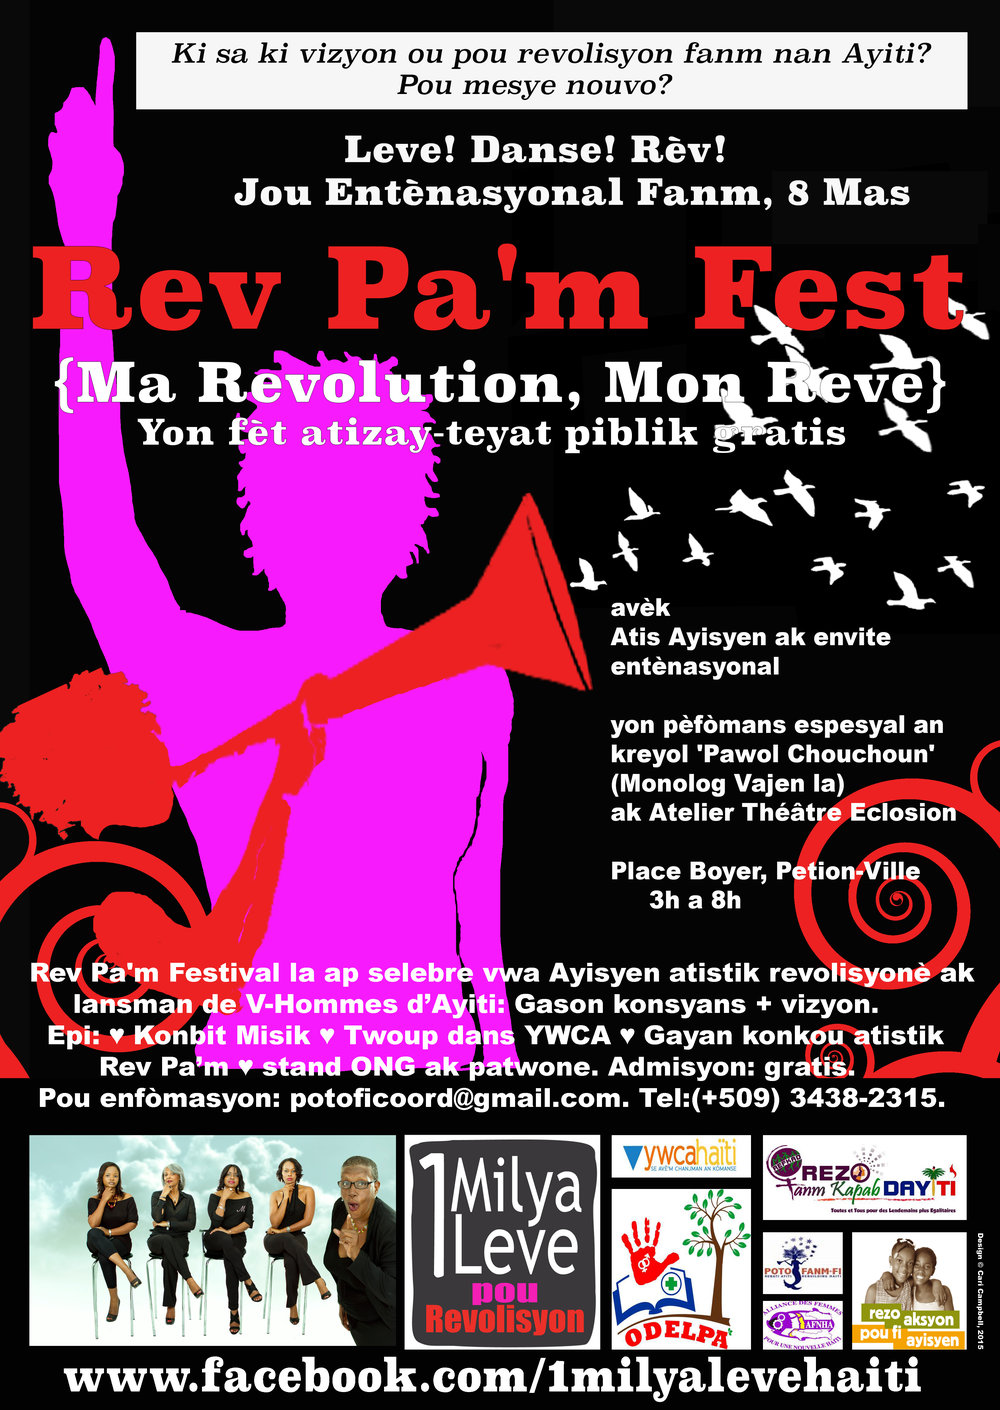 Poster for the Haiti My Revolution Festival (Rev Pa'm in Kreyol), March 8, 2014.